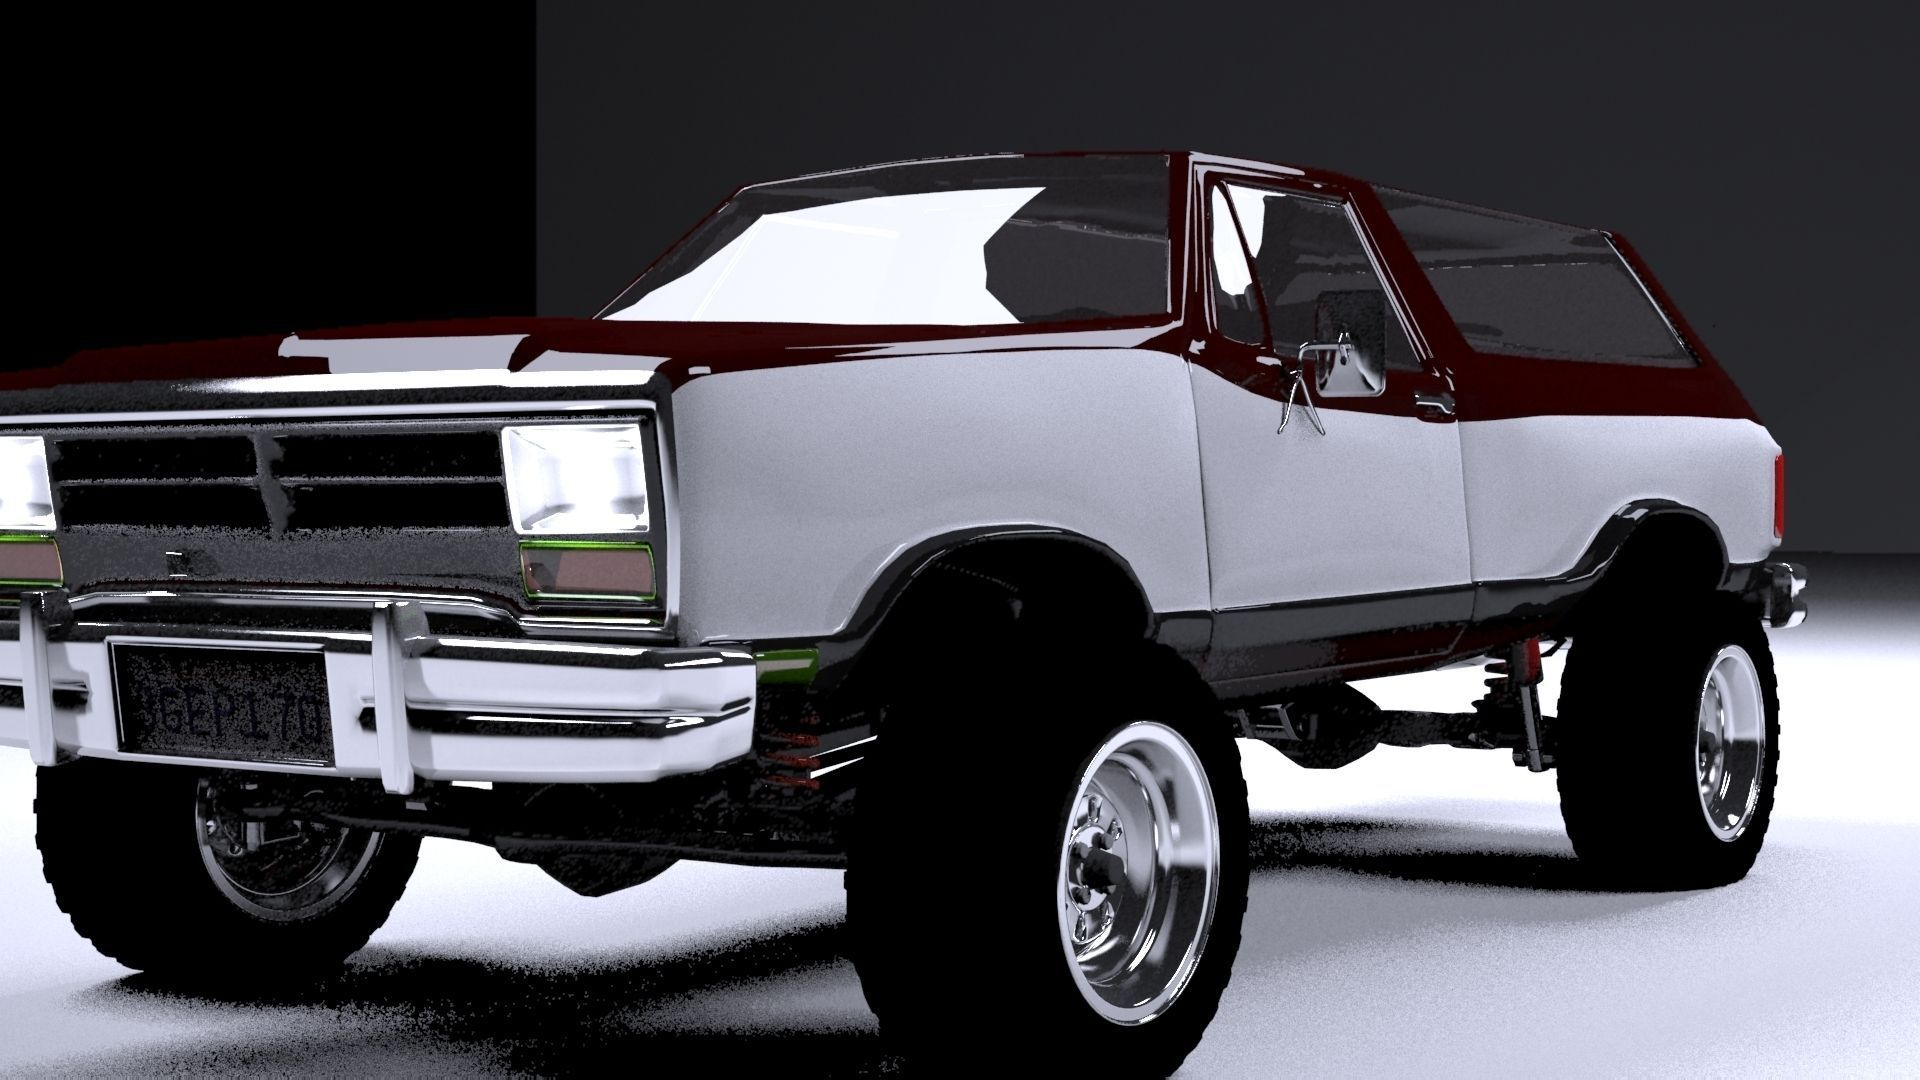 dodge ramcharger 1980 truck 3d model max obj 3ds fbx mtl. Black Bedroom Furniture Sets. Home Design Ideas